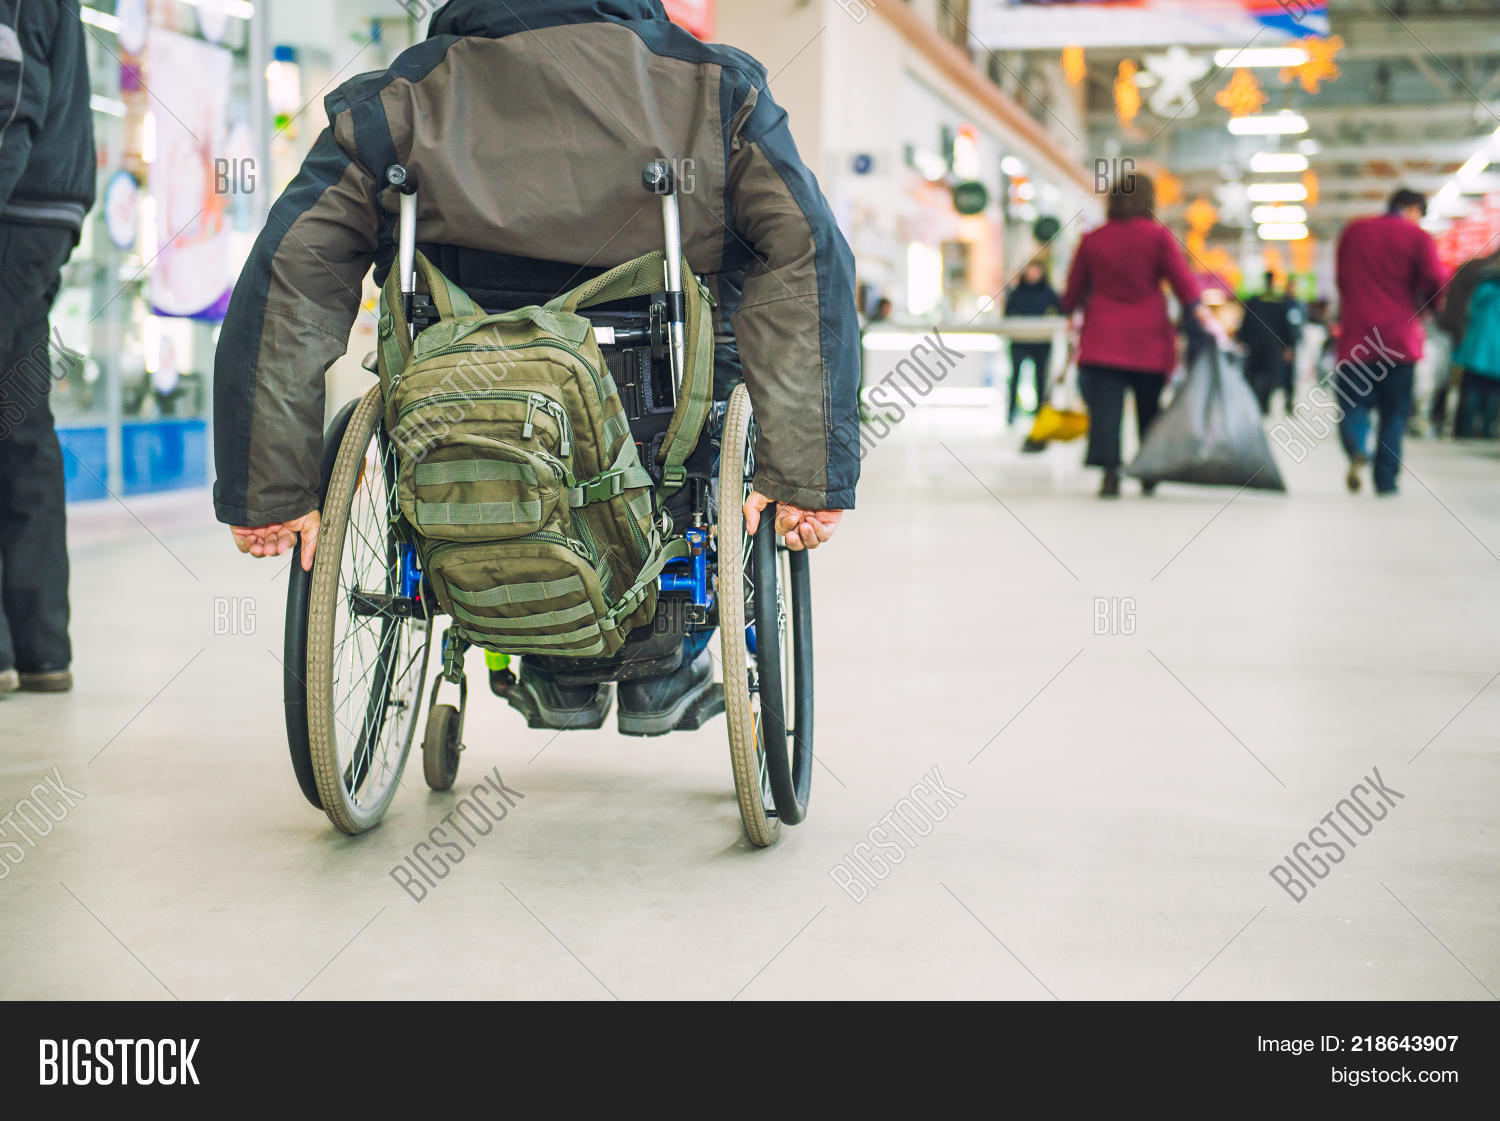 No Face Aged Disabled Image & Photo (Free Trial) | Bigstock